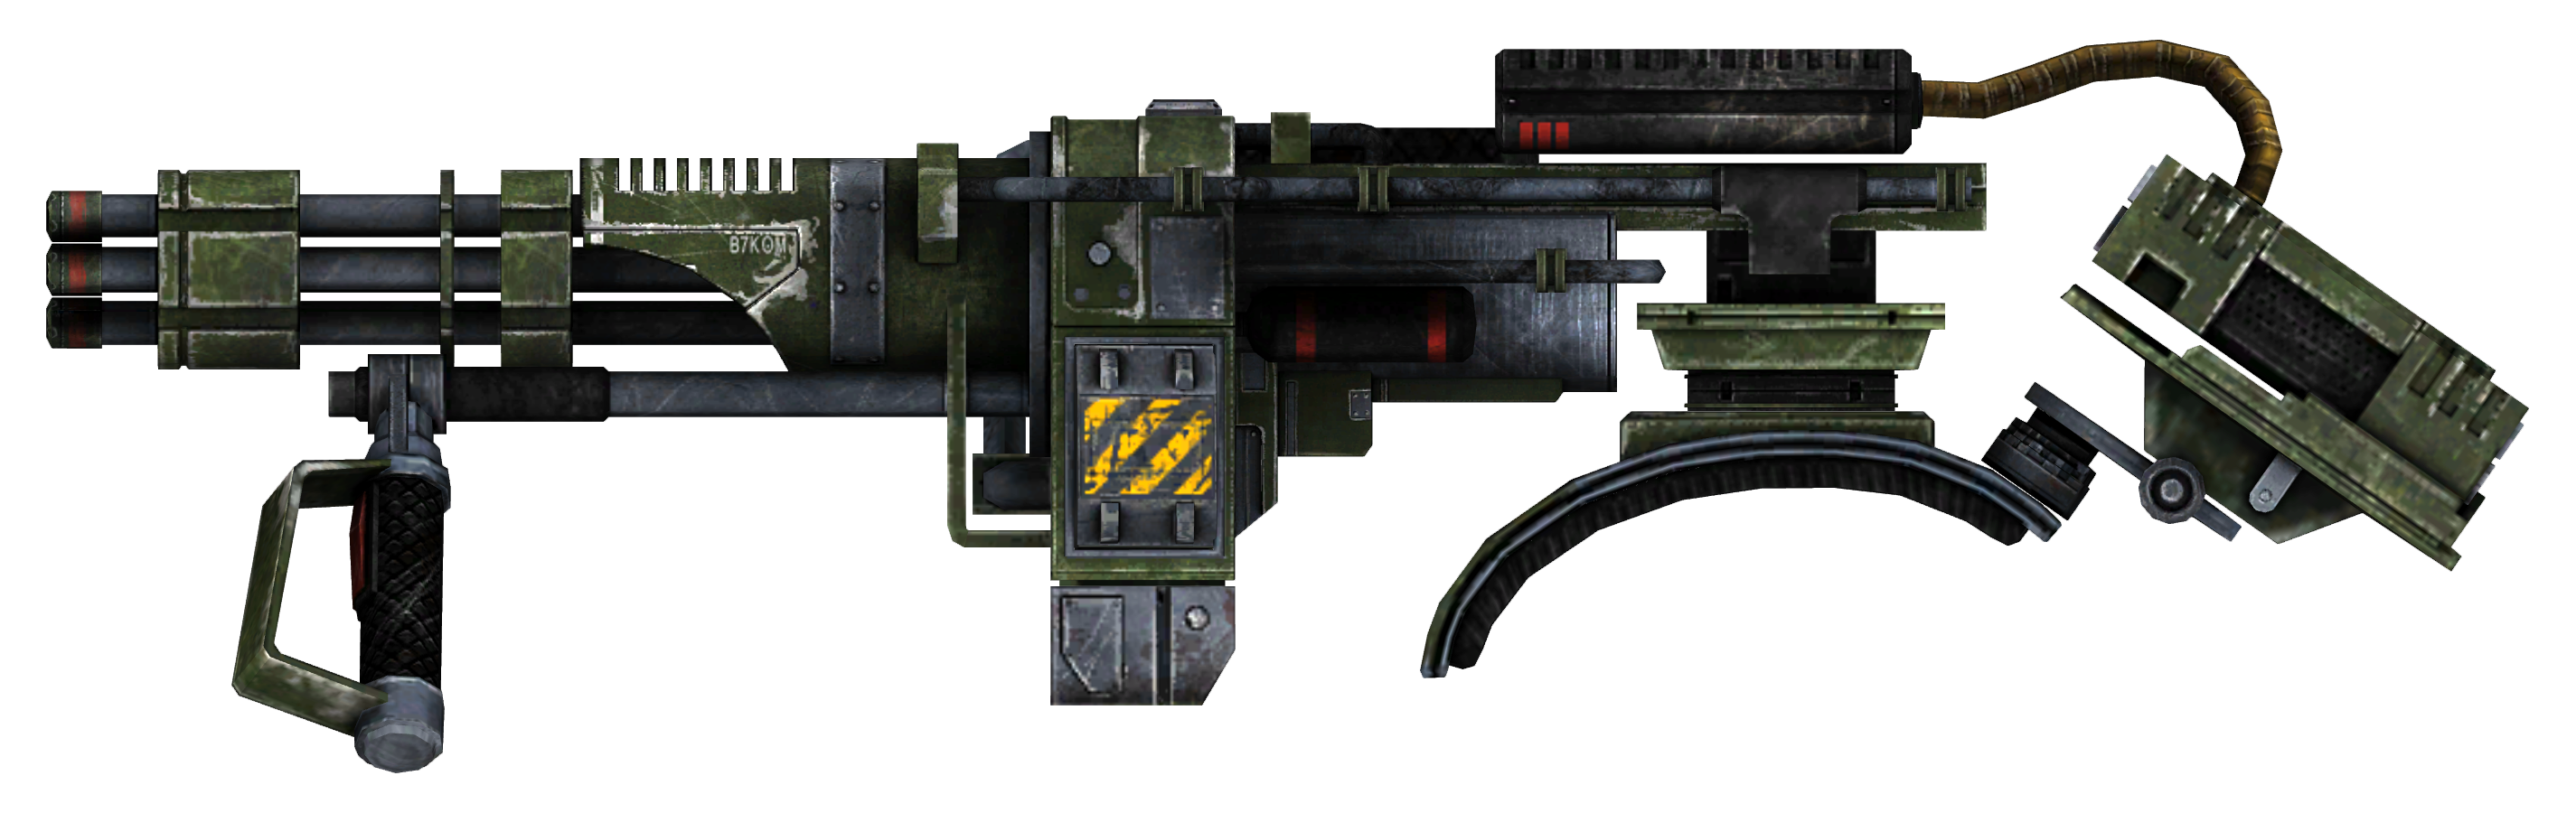 http://img3.wikia.nocookie.net/__cb20110921022901/fallout/images/1/15/Shoulder_mounted_machine_gun.png